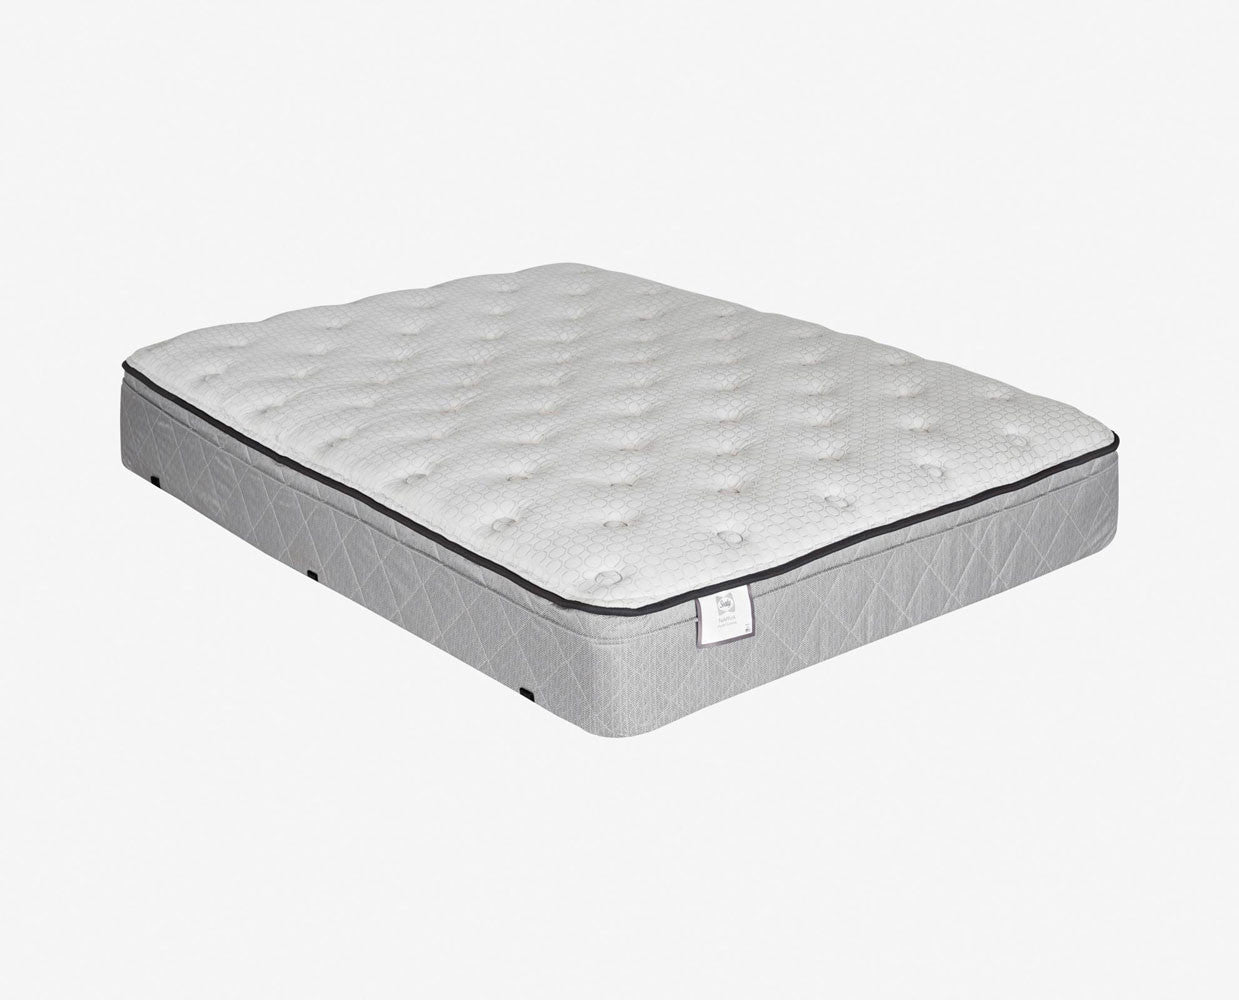 Plush supportive mattress